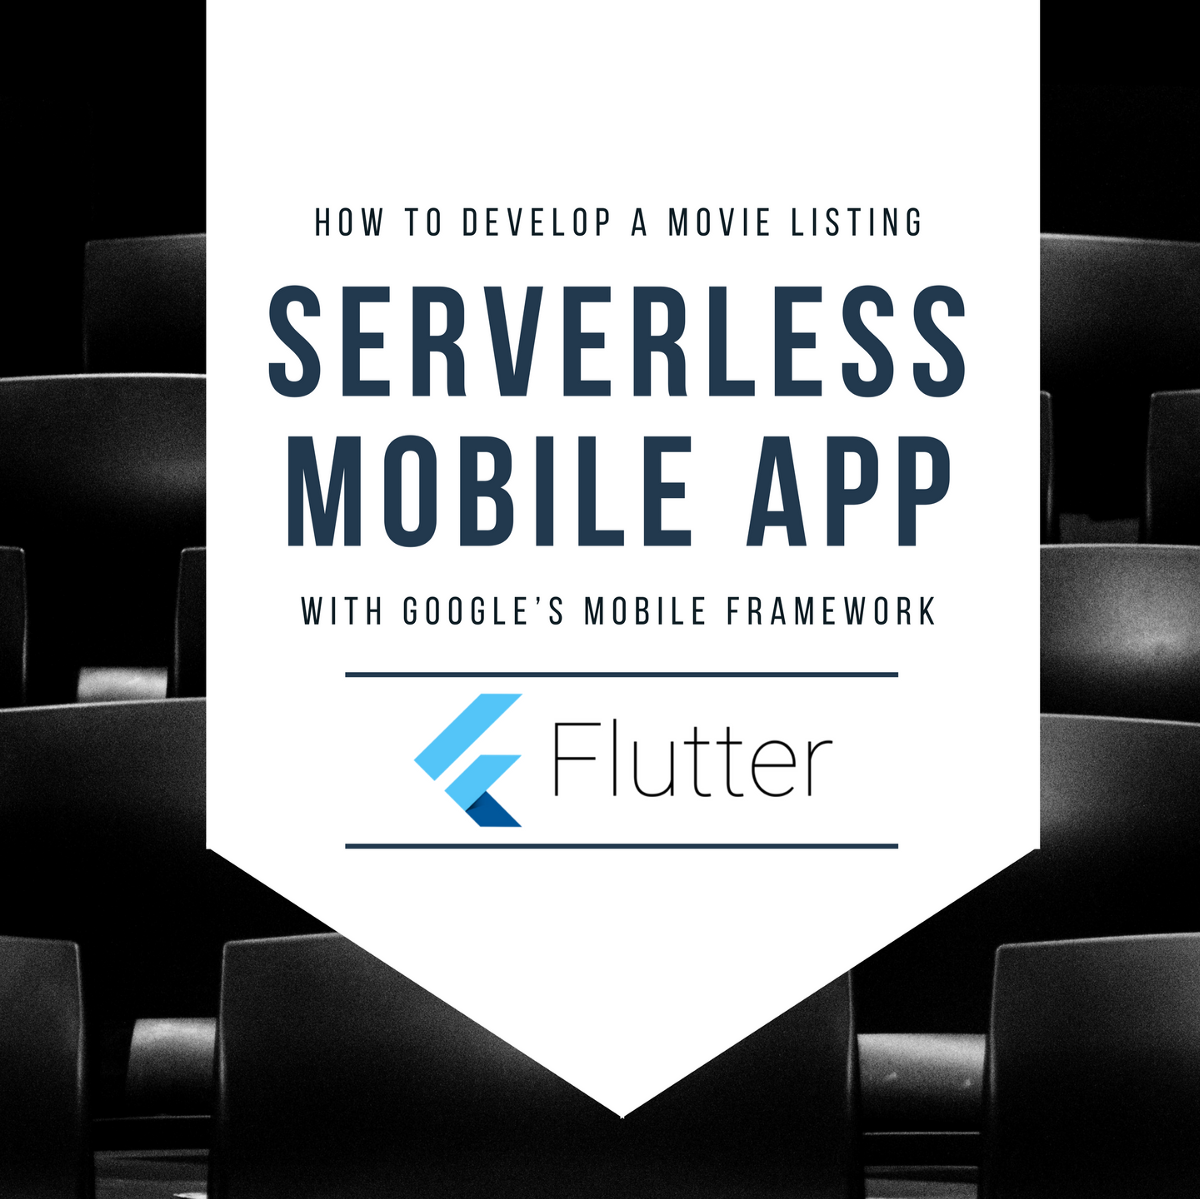 Google Flutter with AWS Lambda to build a serverless mobile